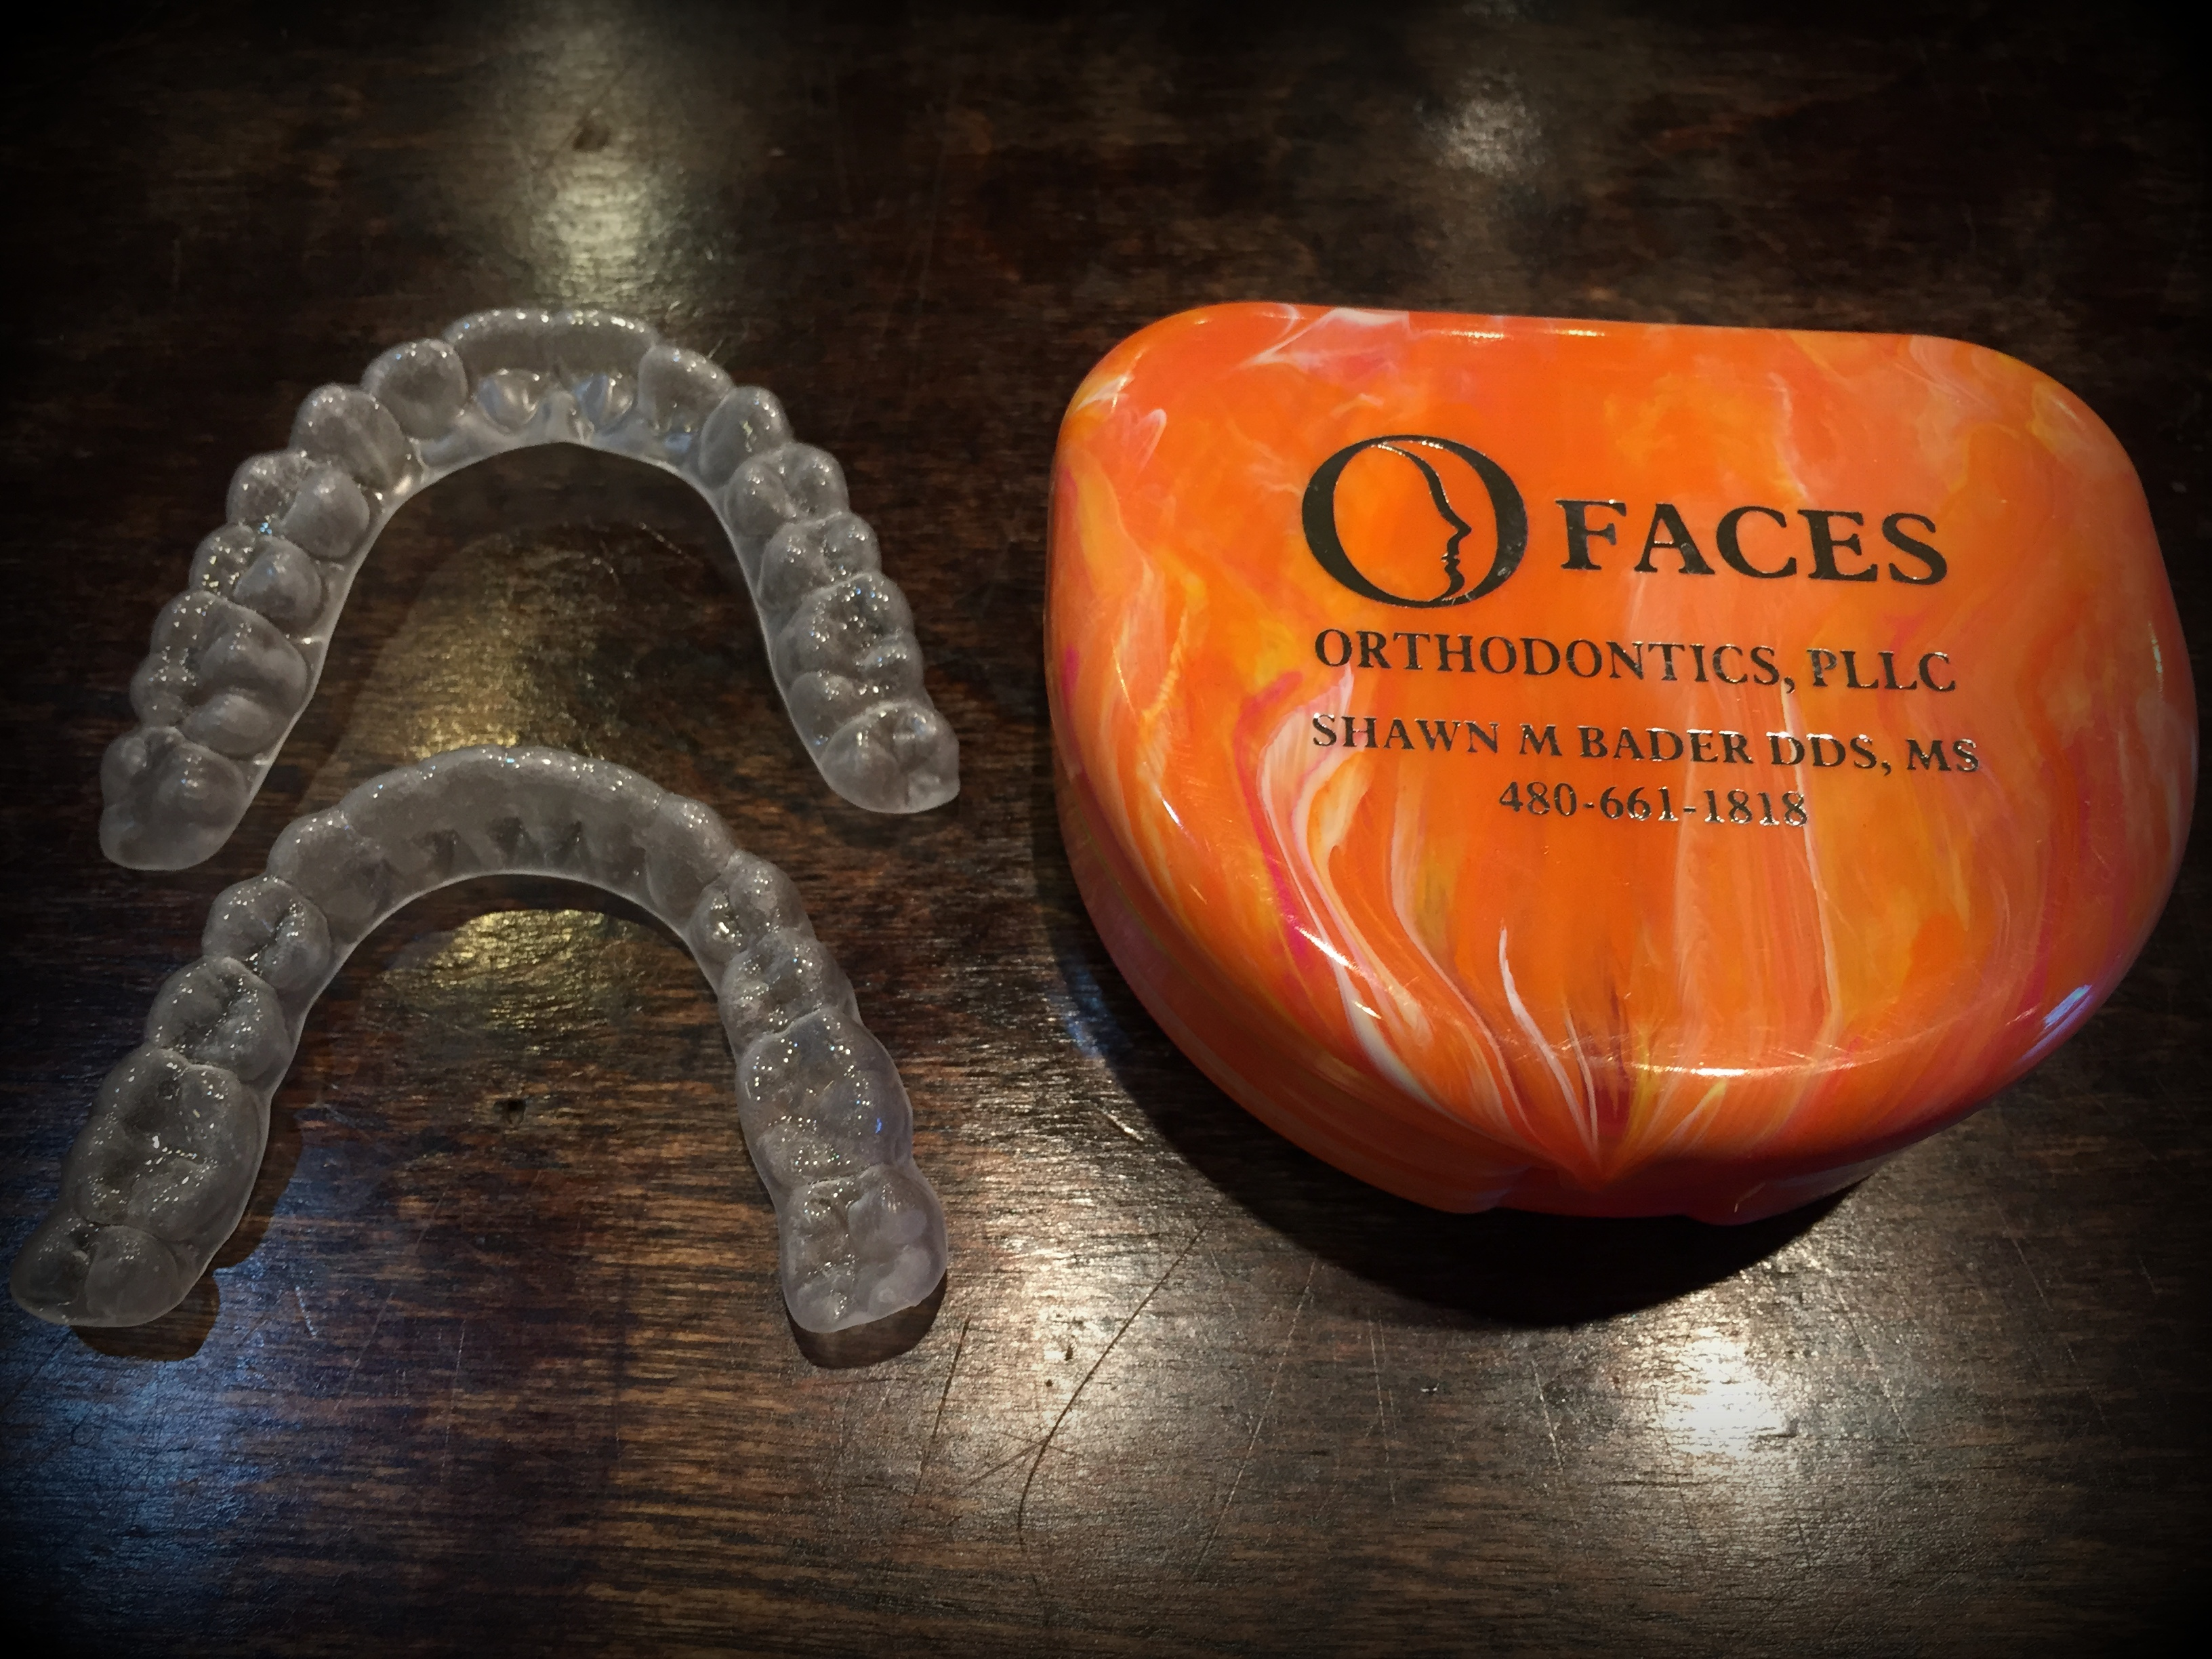 Clear retainers for post-orthodontic treatment